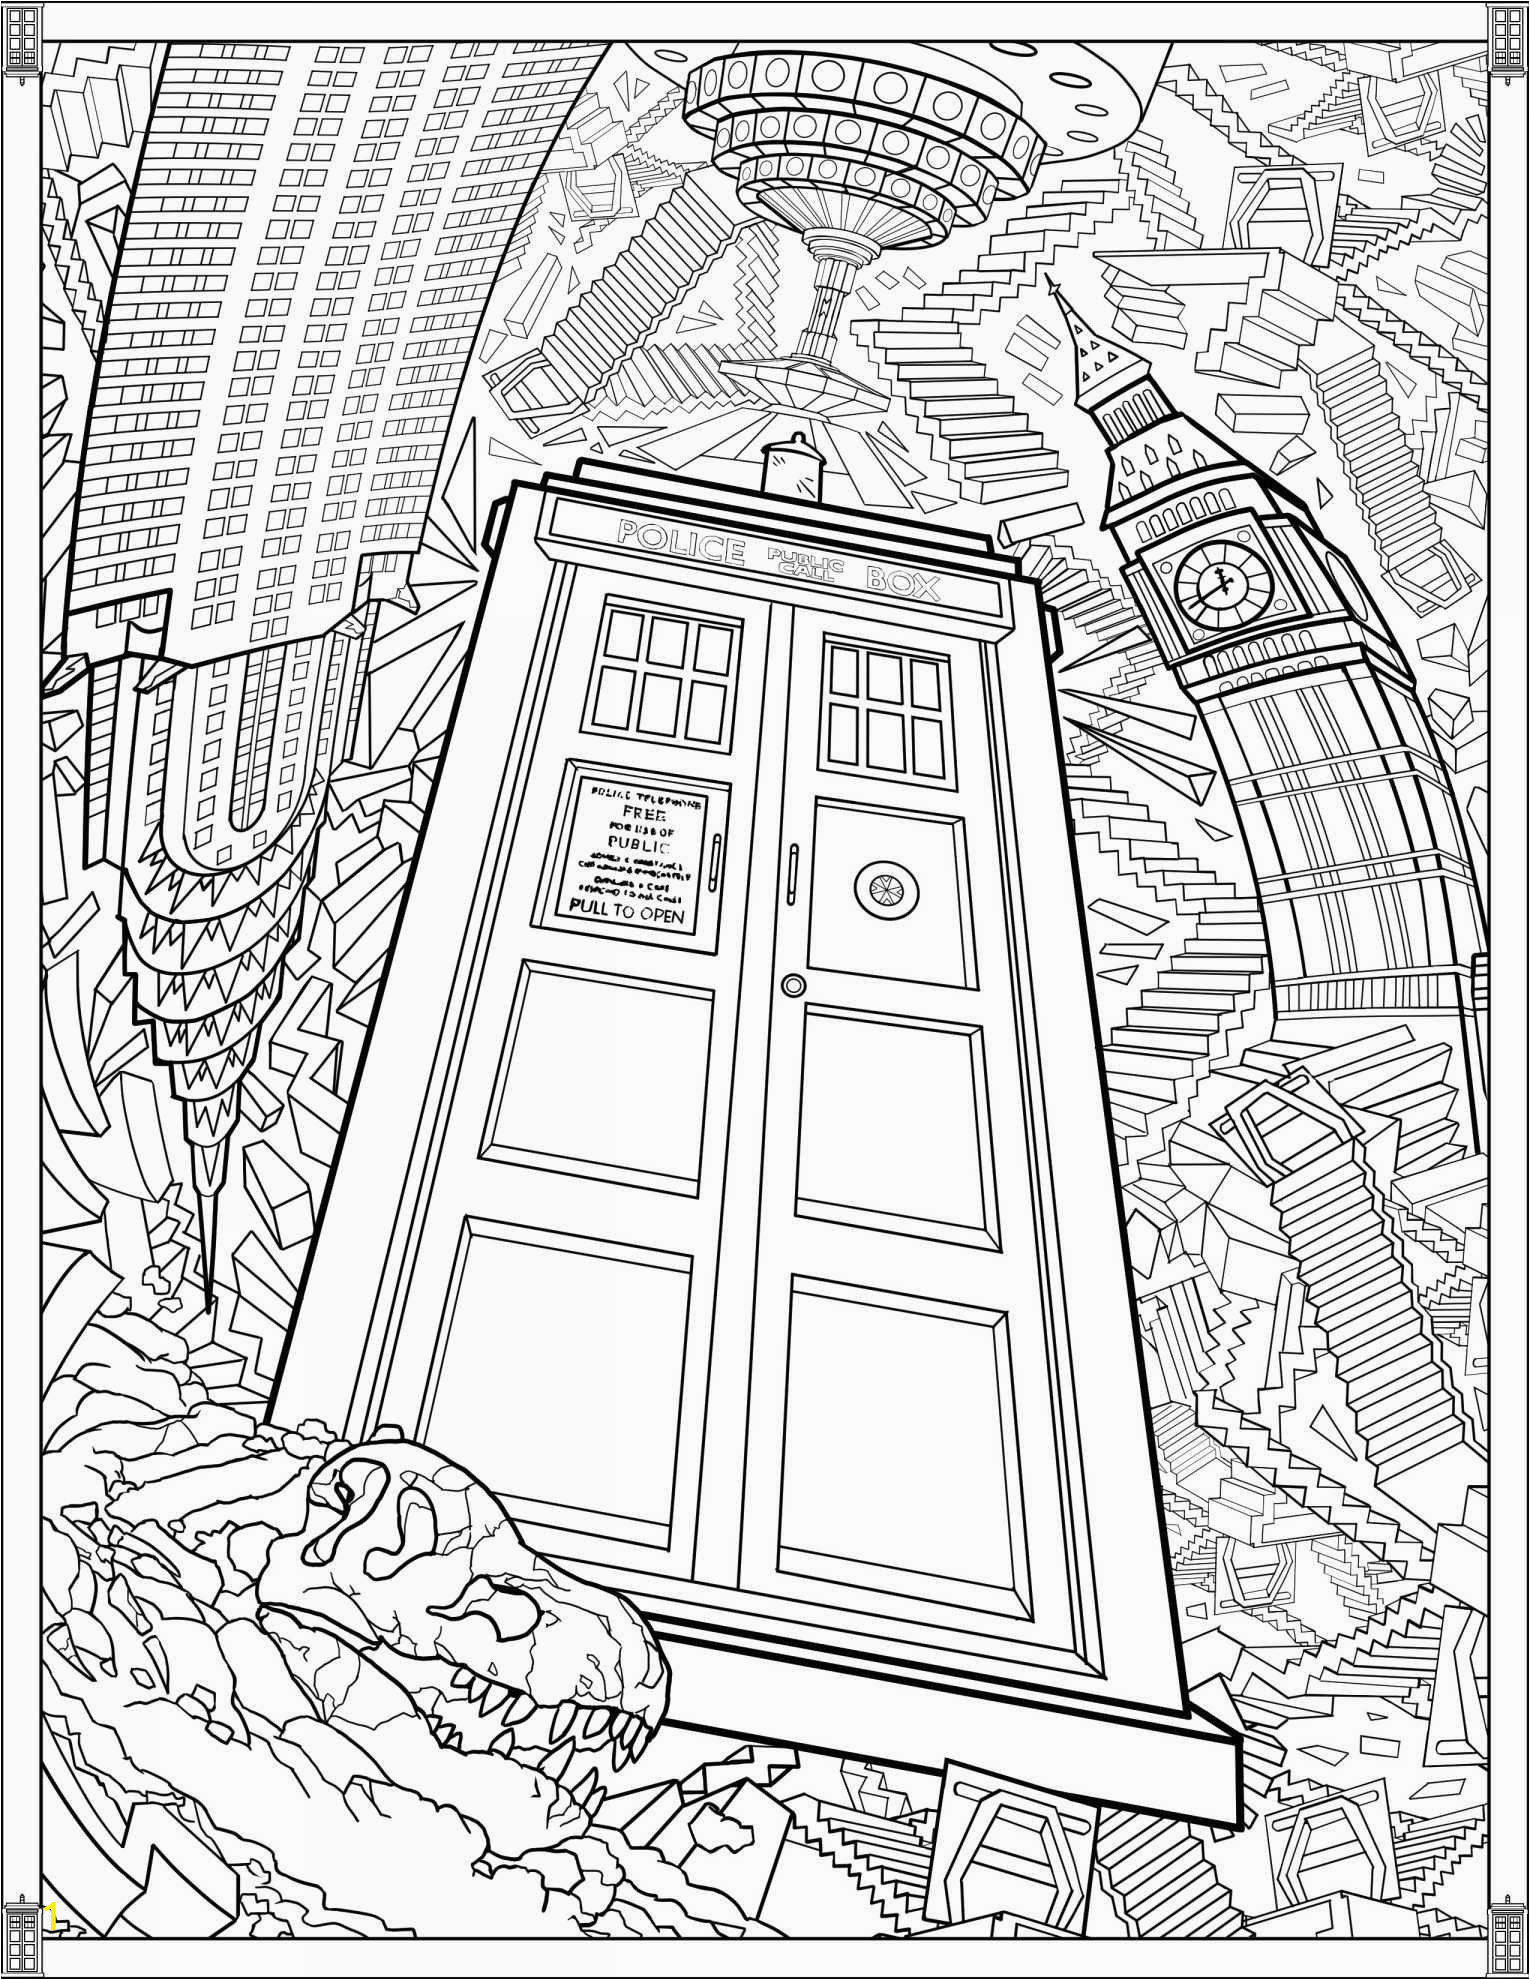 candy cane to color unique free religious christmas coloring pages print stunning pictures of gorgeous as much christian robin s great santasaurus interiorsbyminole pages